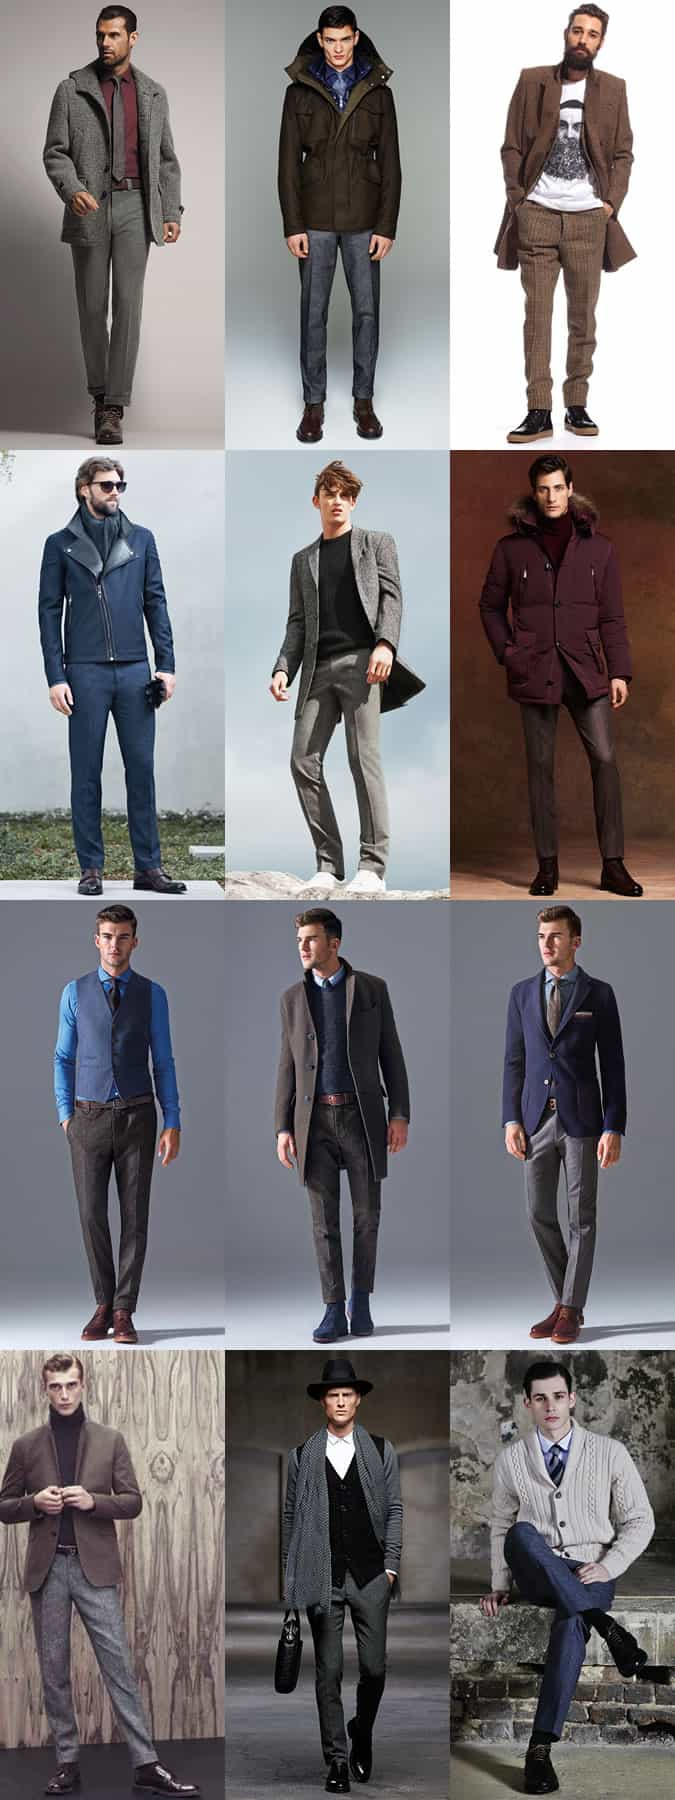 Men's Tweed Trousers Autumn/Winter Outfit Inspiration Lookbook